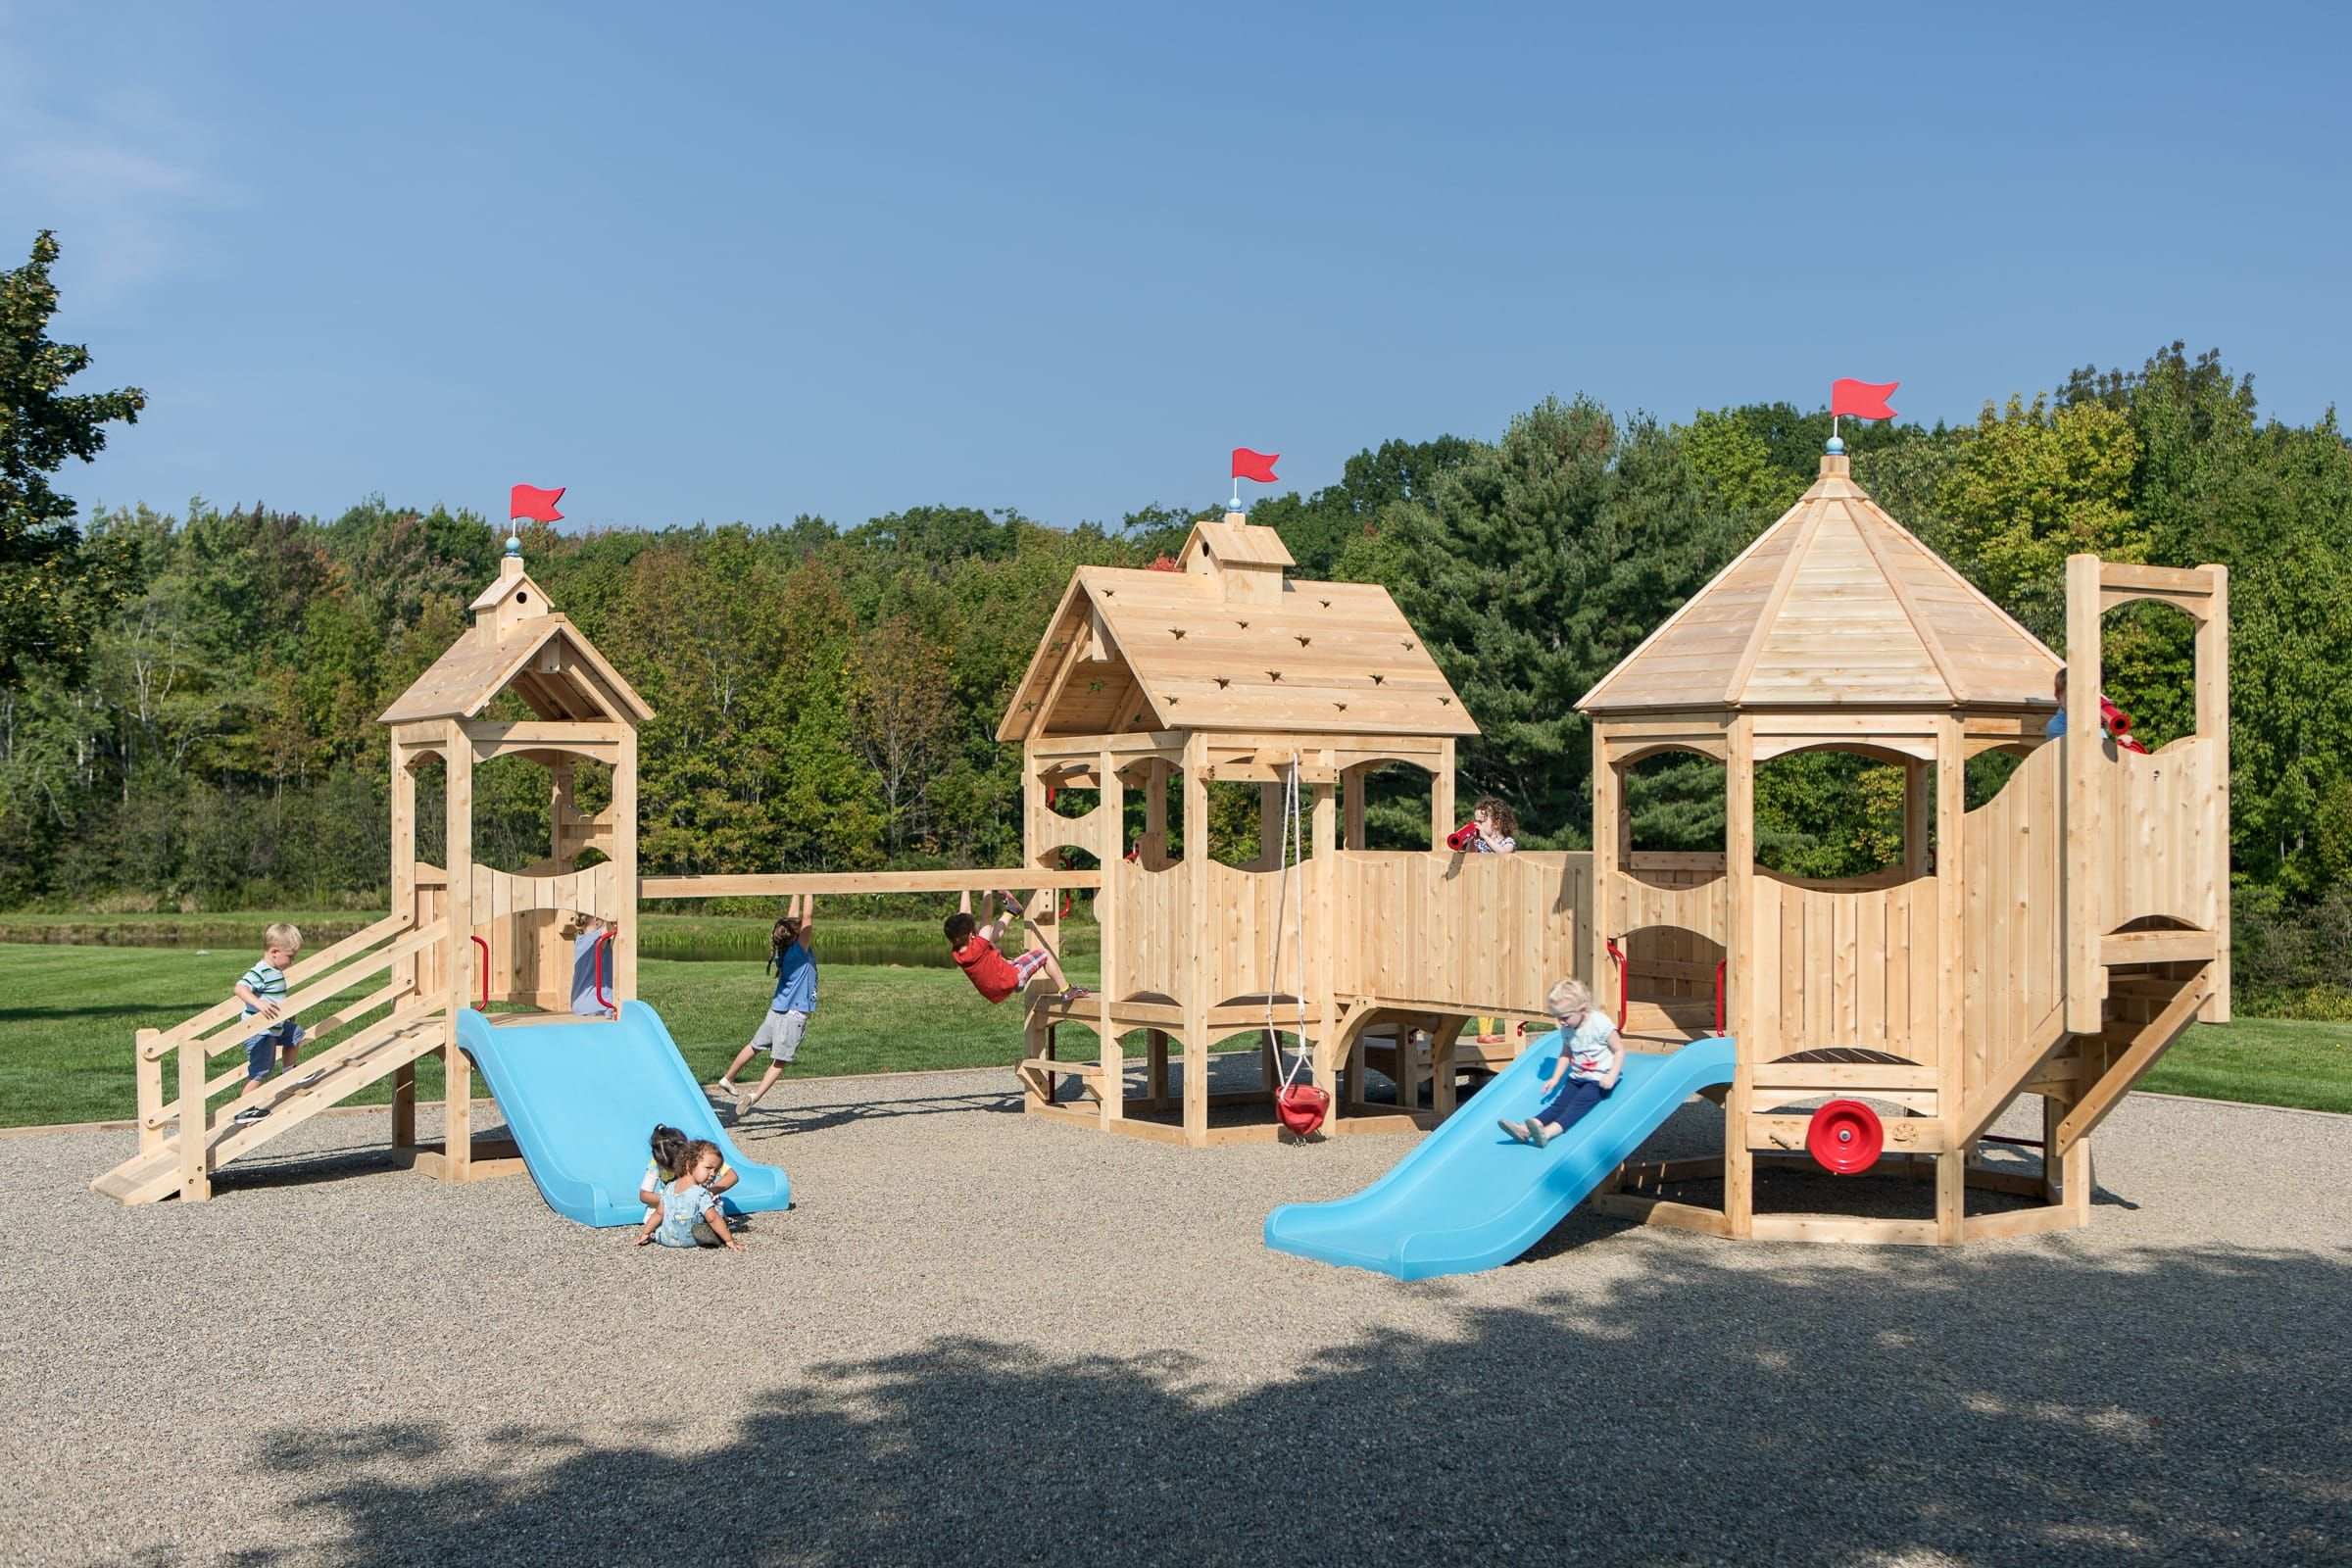 Commercial Outdoor 620 Cedarworks Playsets Playset Outdoor Outdoor Playset